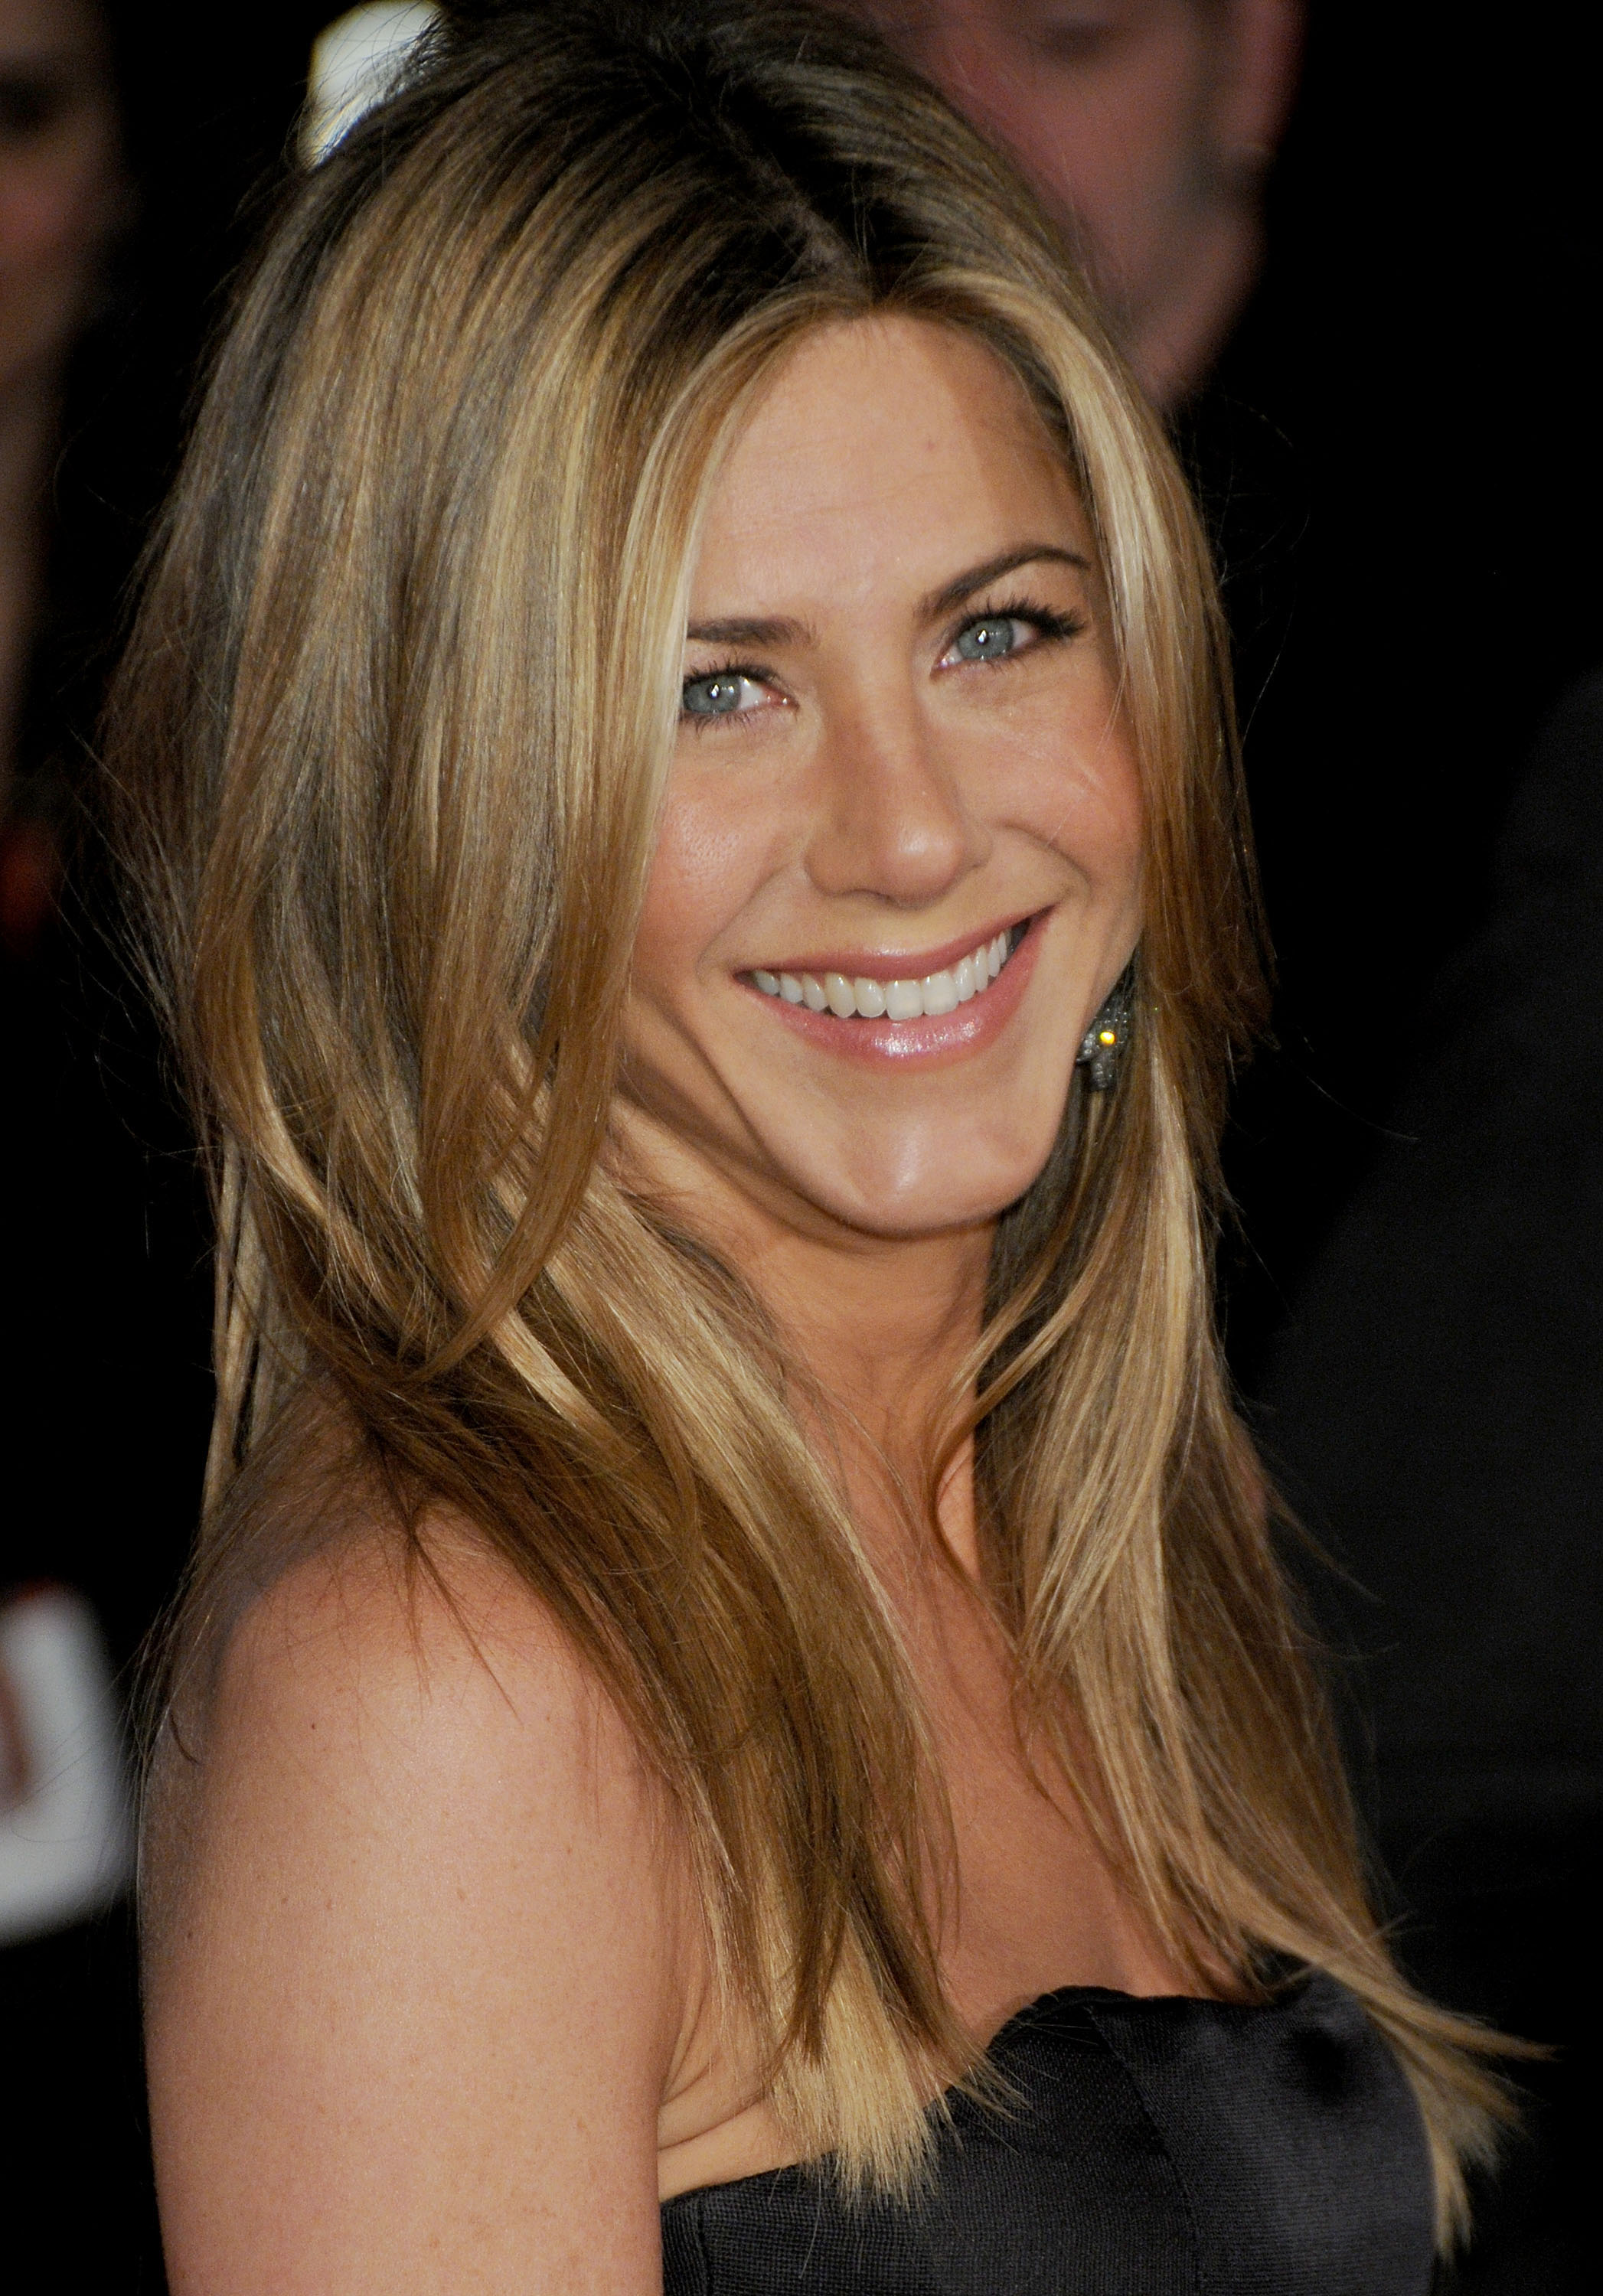 Sexy Pics Of Jenifer Aniston